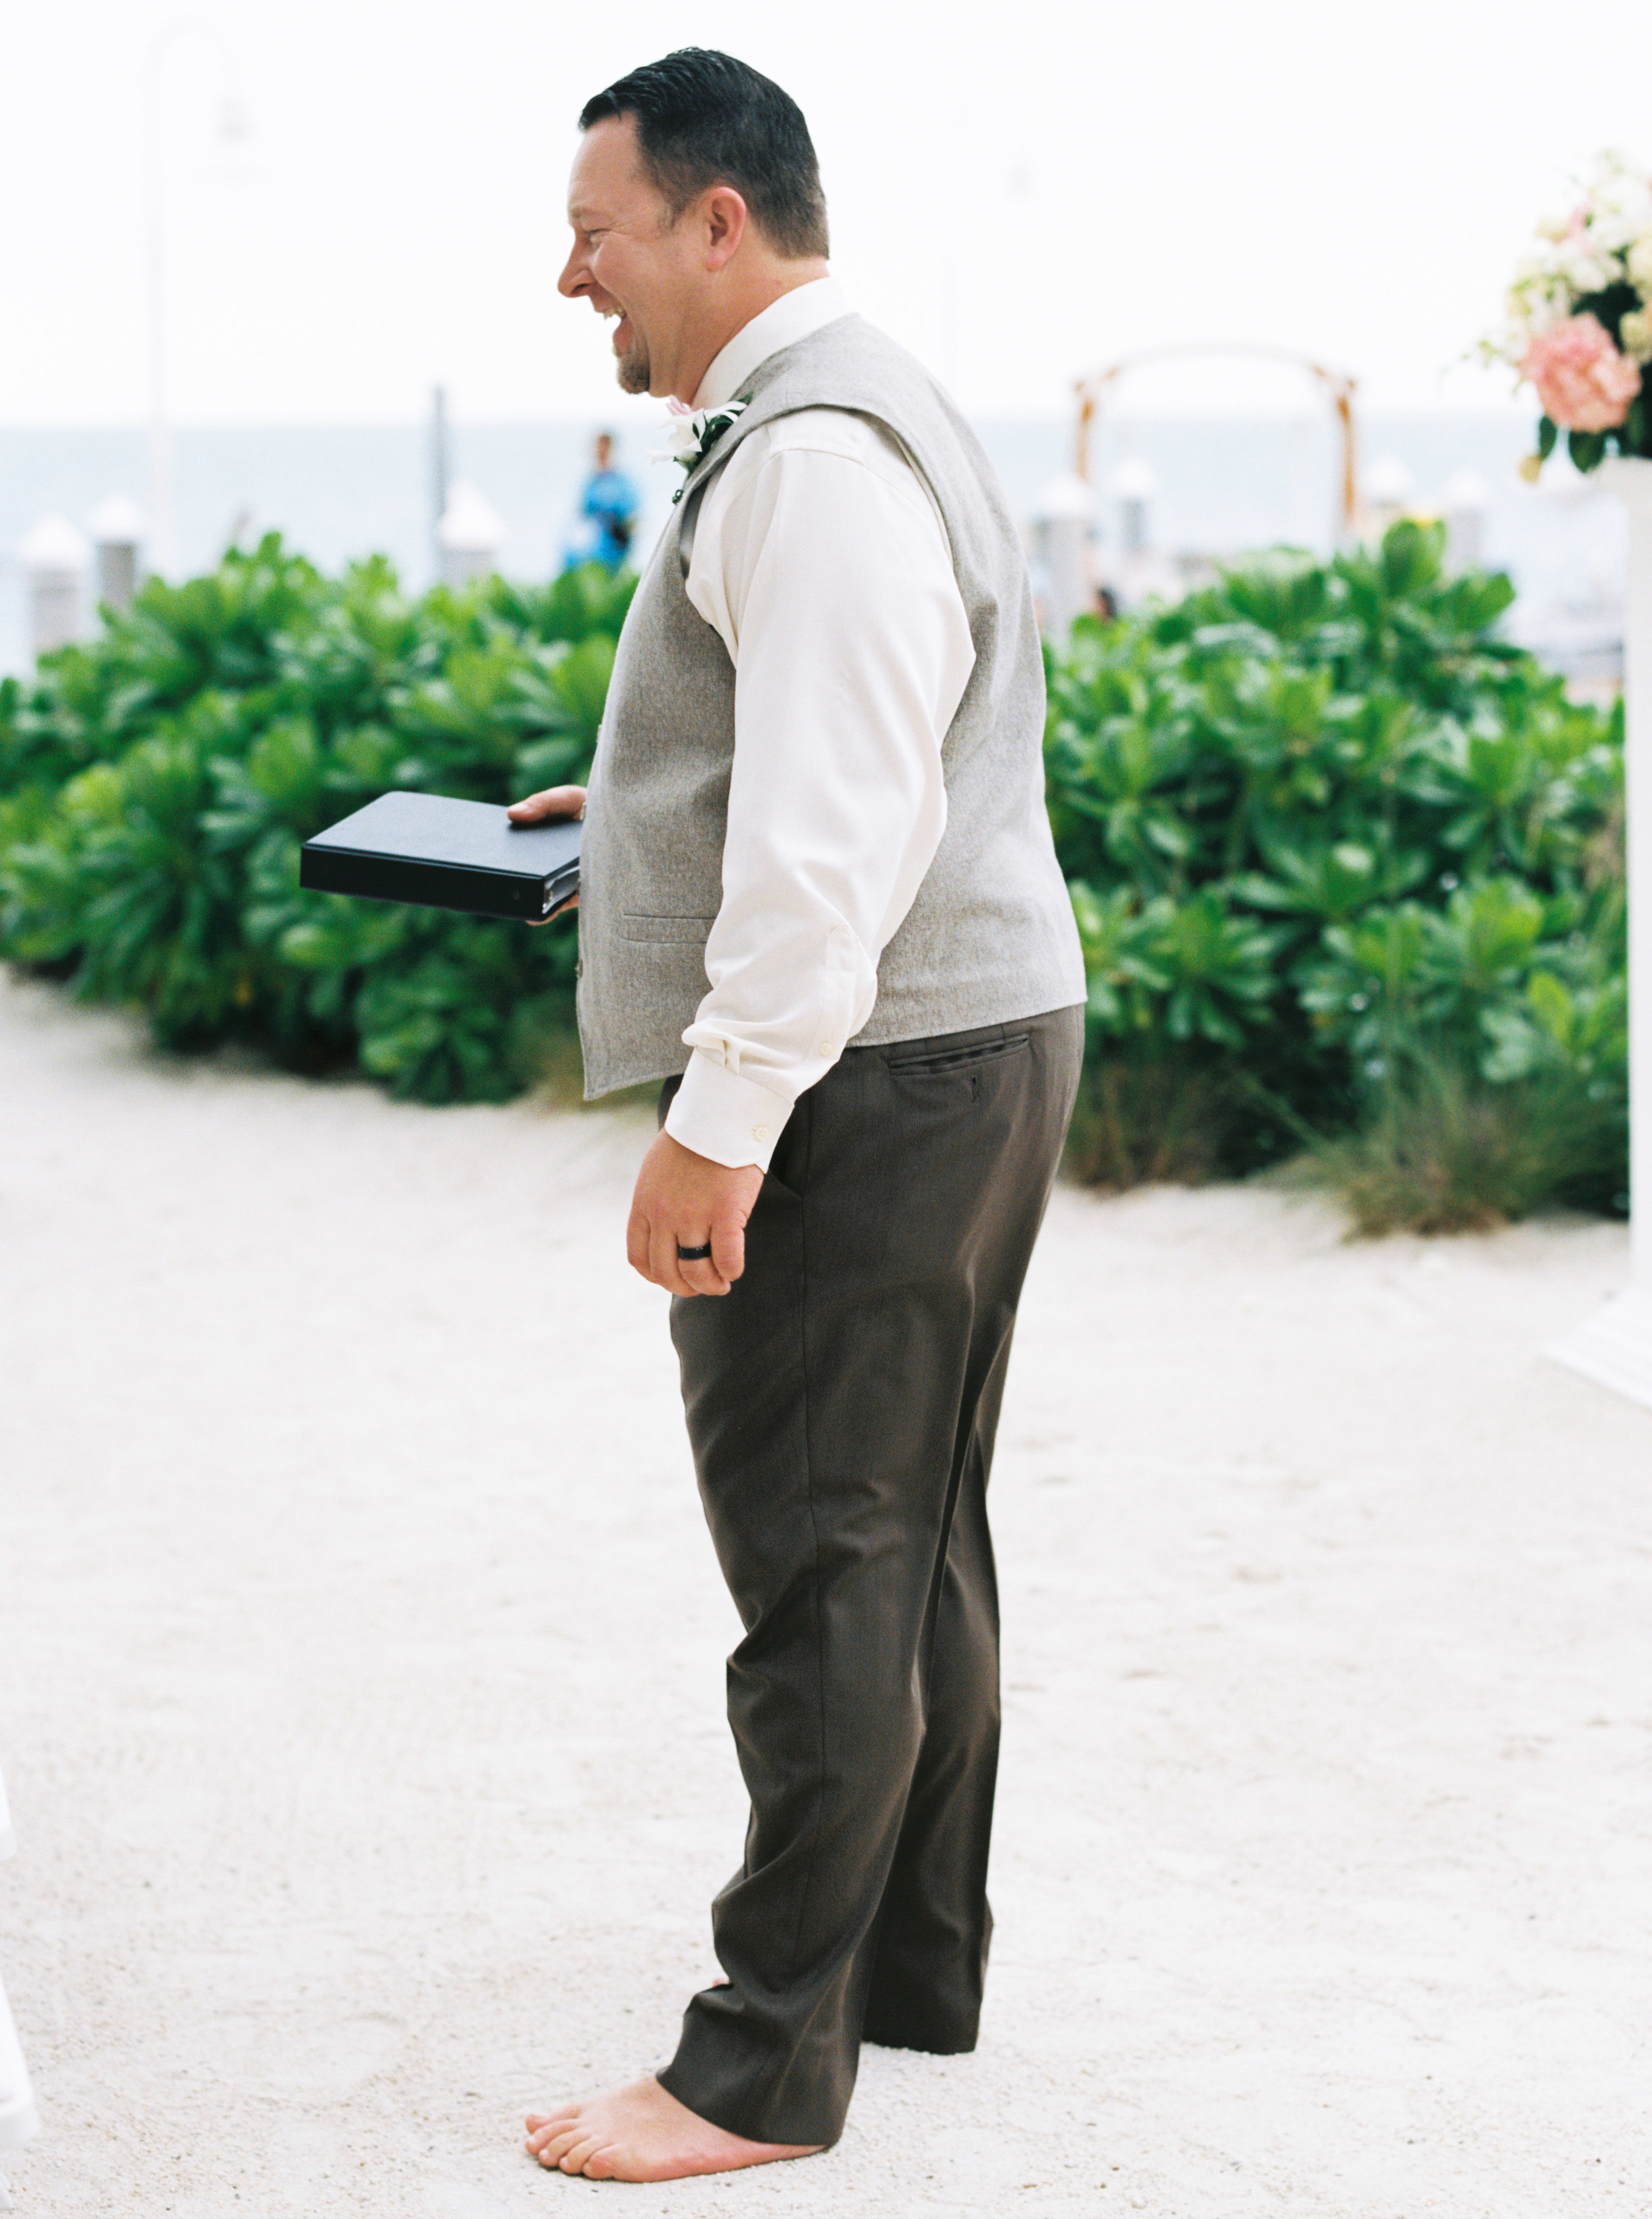 Key West Florida Wedding Film Photographer Photovision Chicago Wedding Photographer 17.jpg